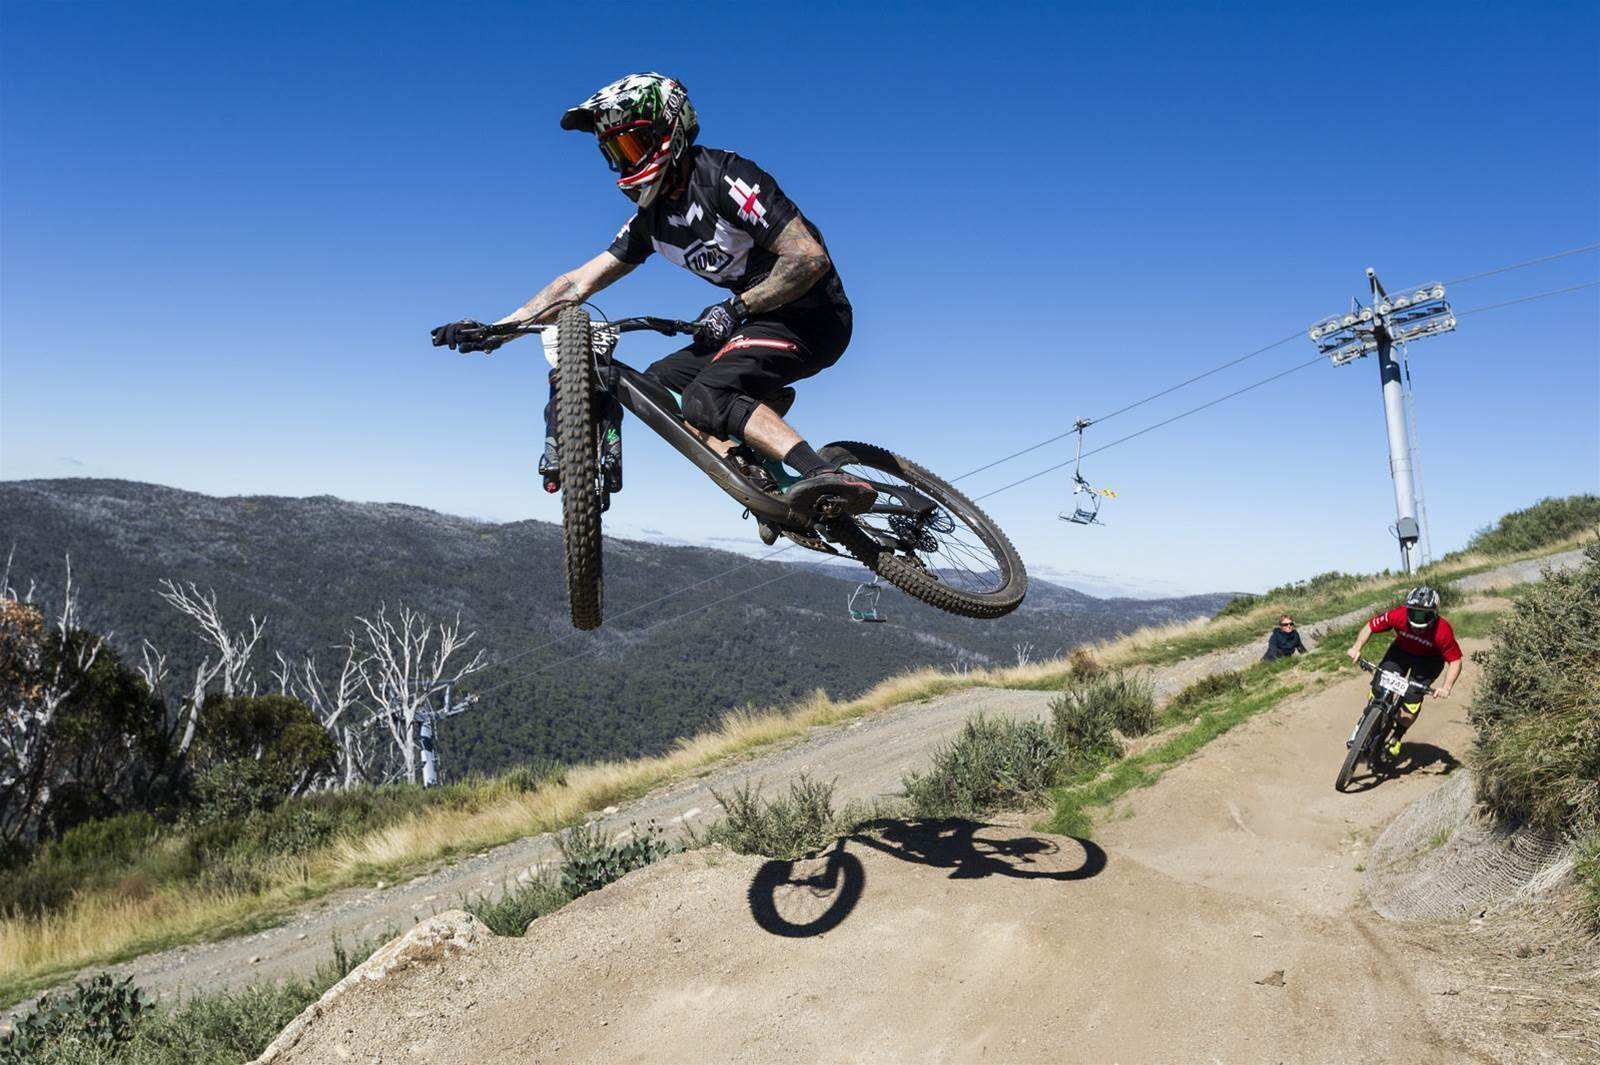 Fox Rollercoaster and RedAss Downhill: Rocky Trail gravity racers descend in Thredbo